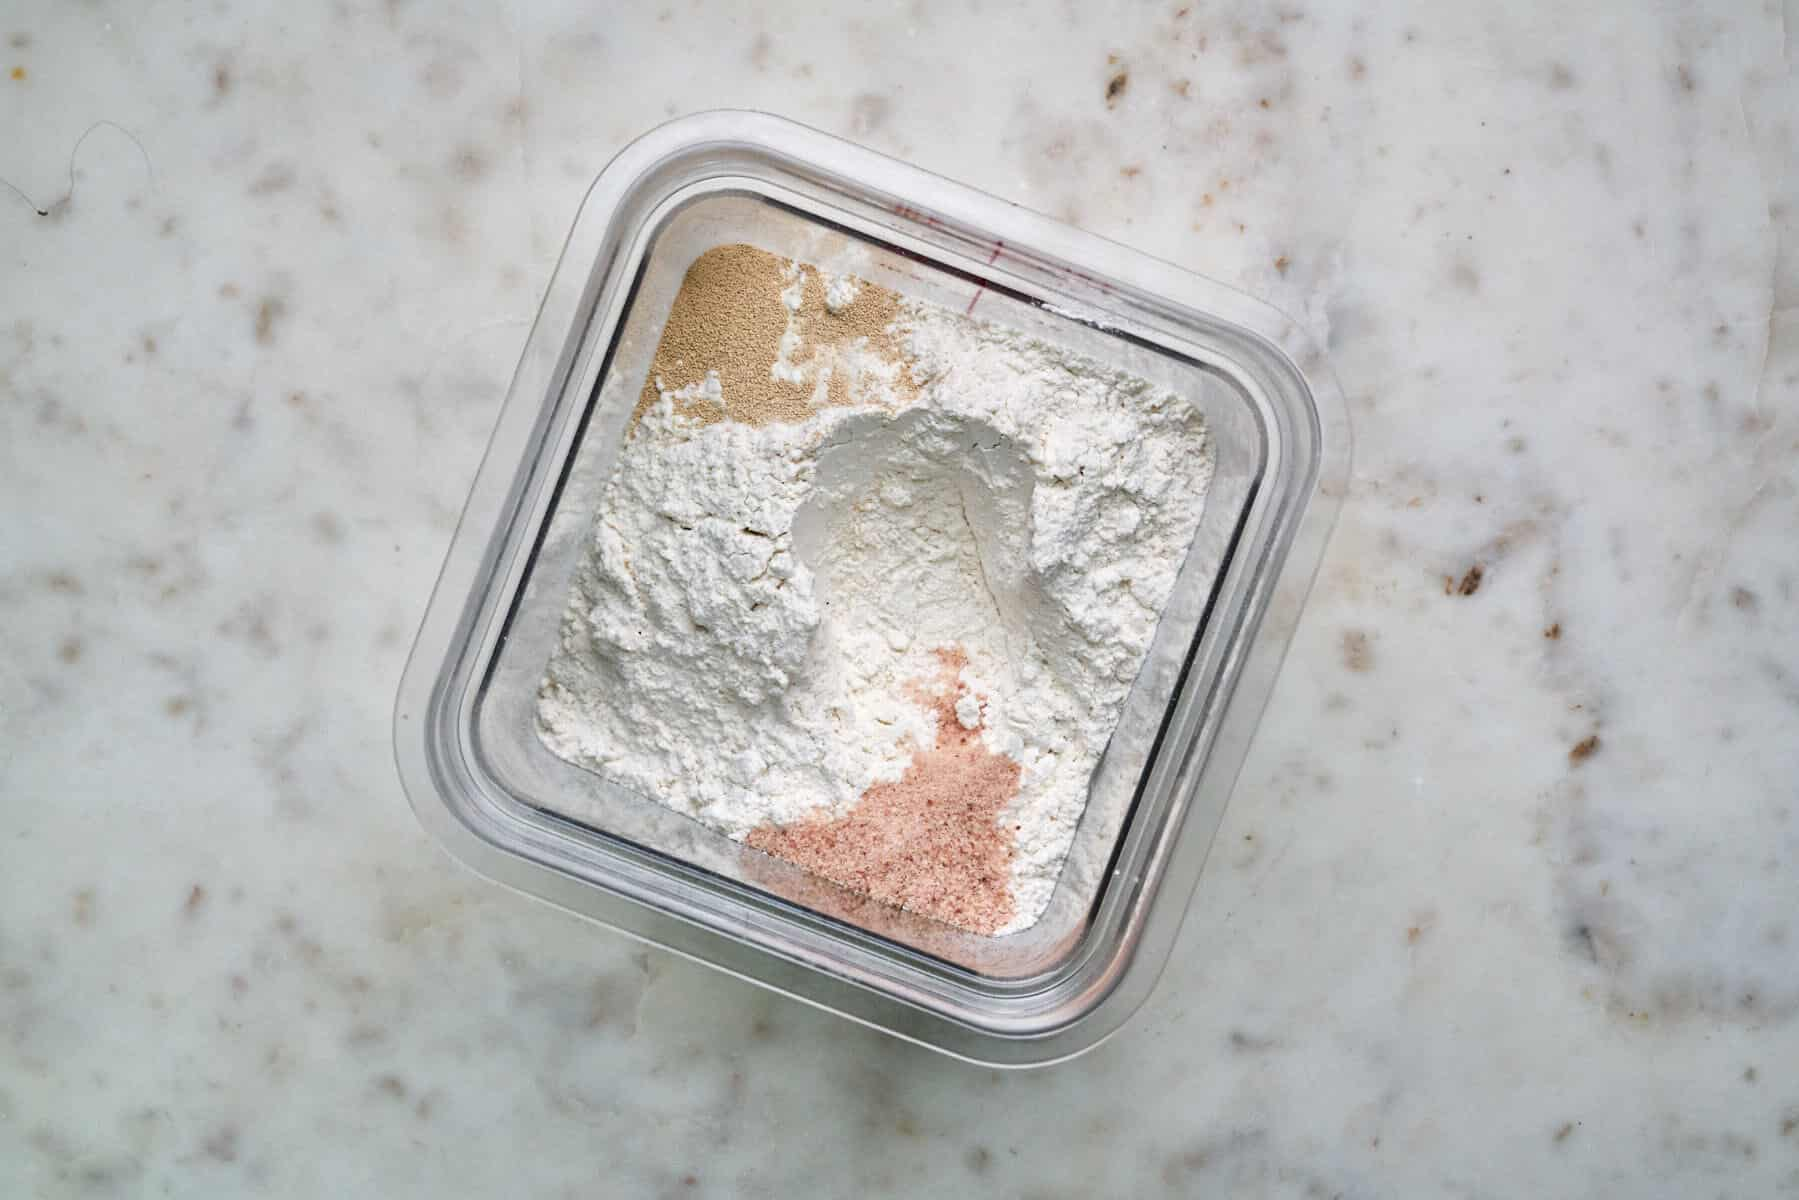 Plastic container with flour, salt, and yeast separate.